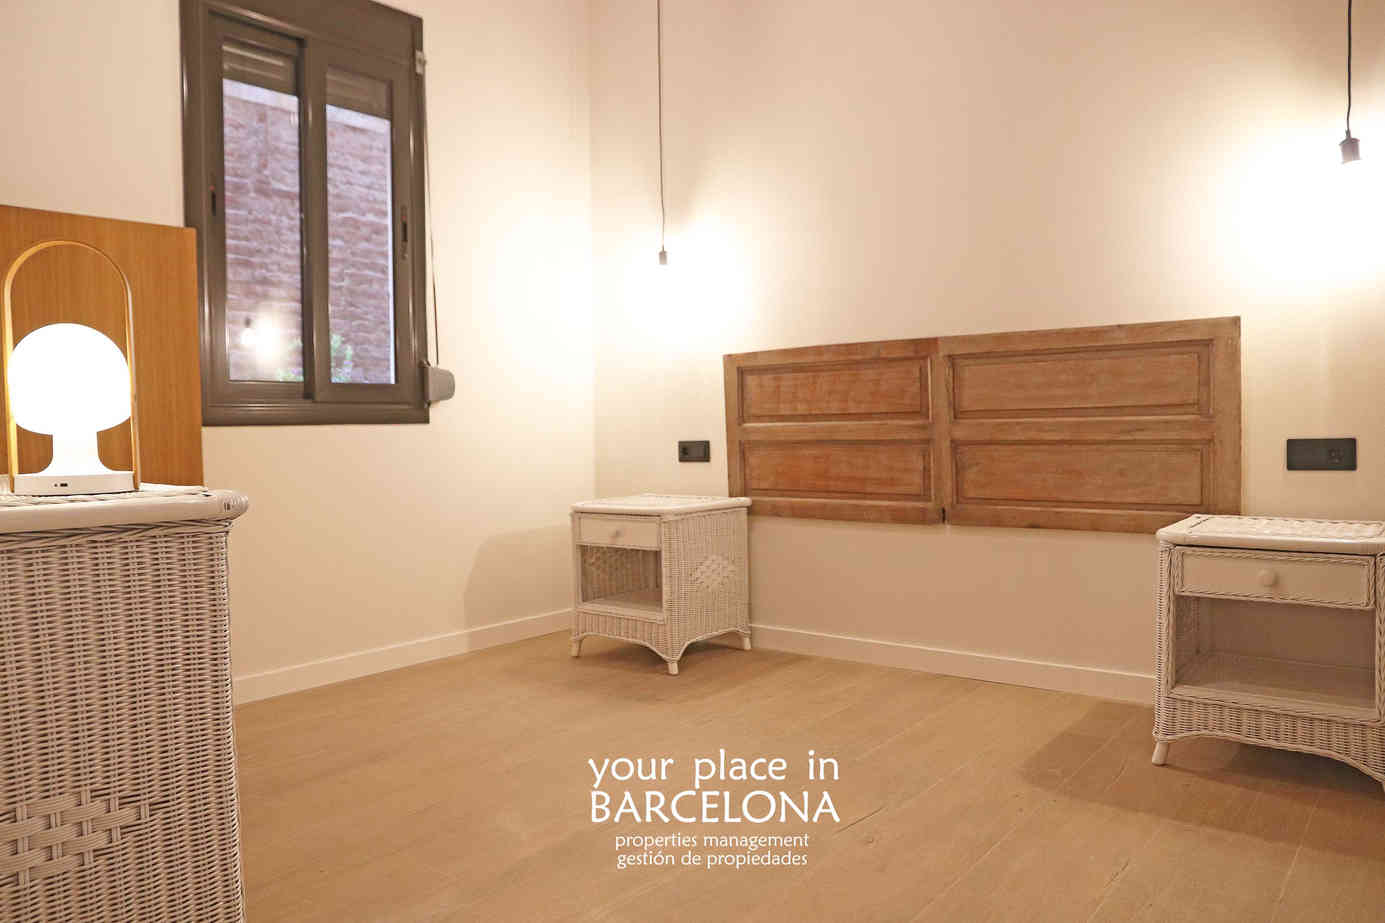 YOUR-PLACE-IN-BARCELONA-PISO-VENTA